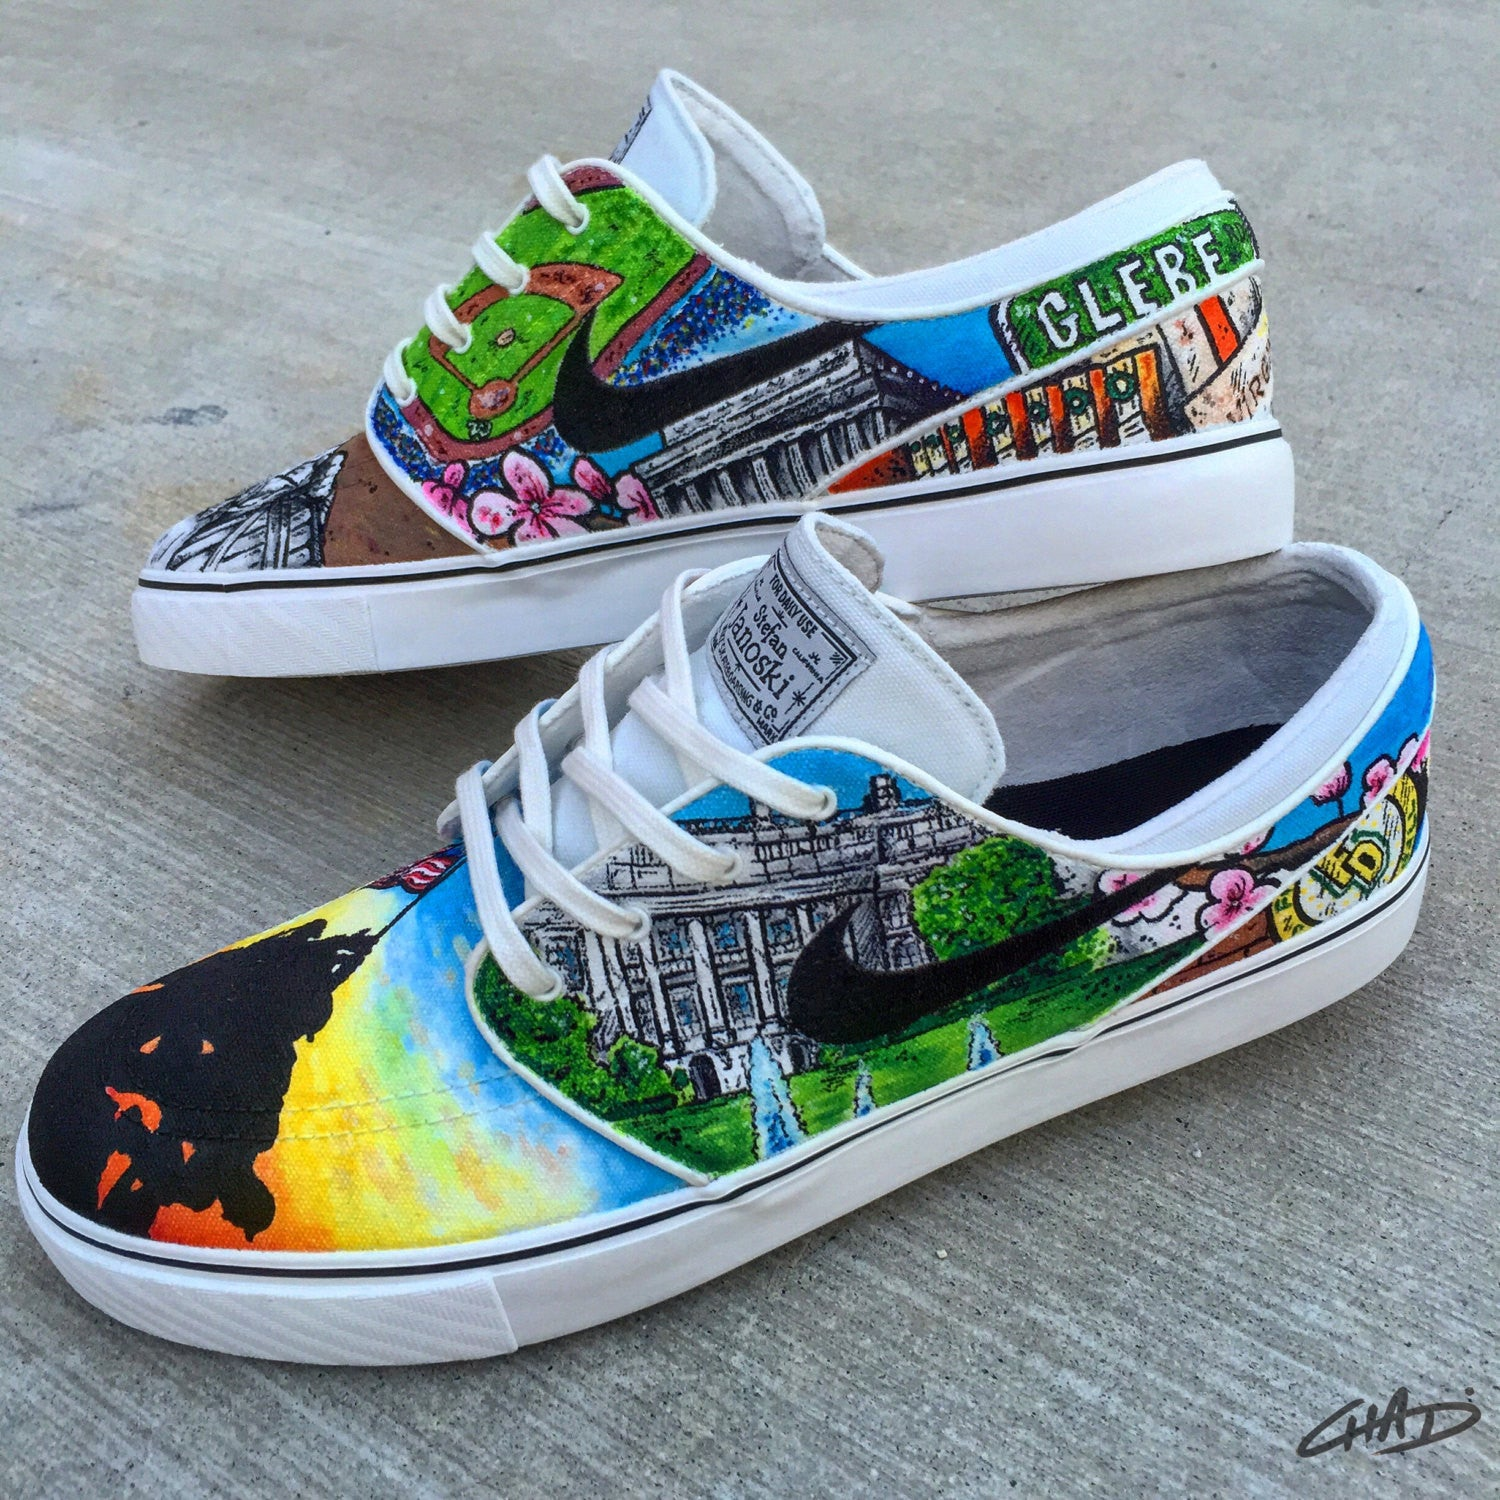 Spots of DC custom hand painted Nike SB Janoski shoes